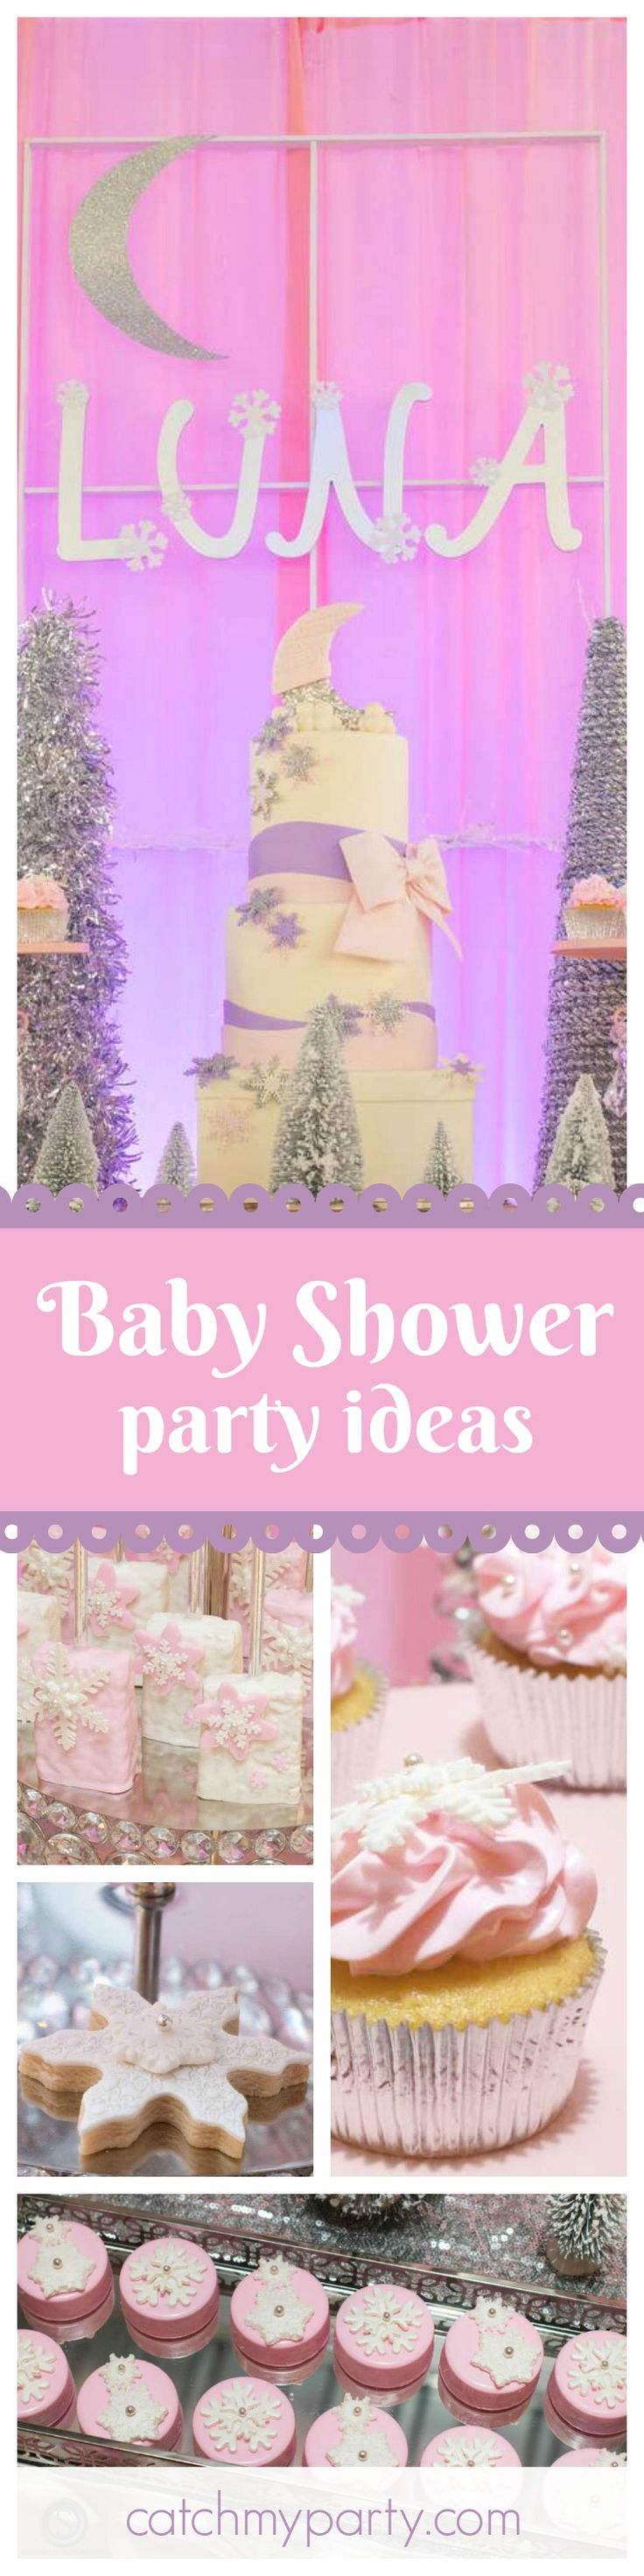 474 best Winter Party Ideas images on Pinterest